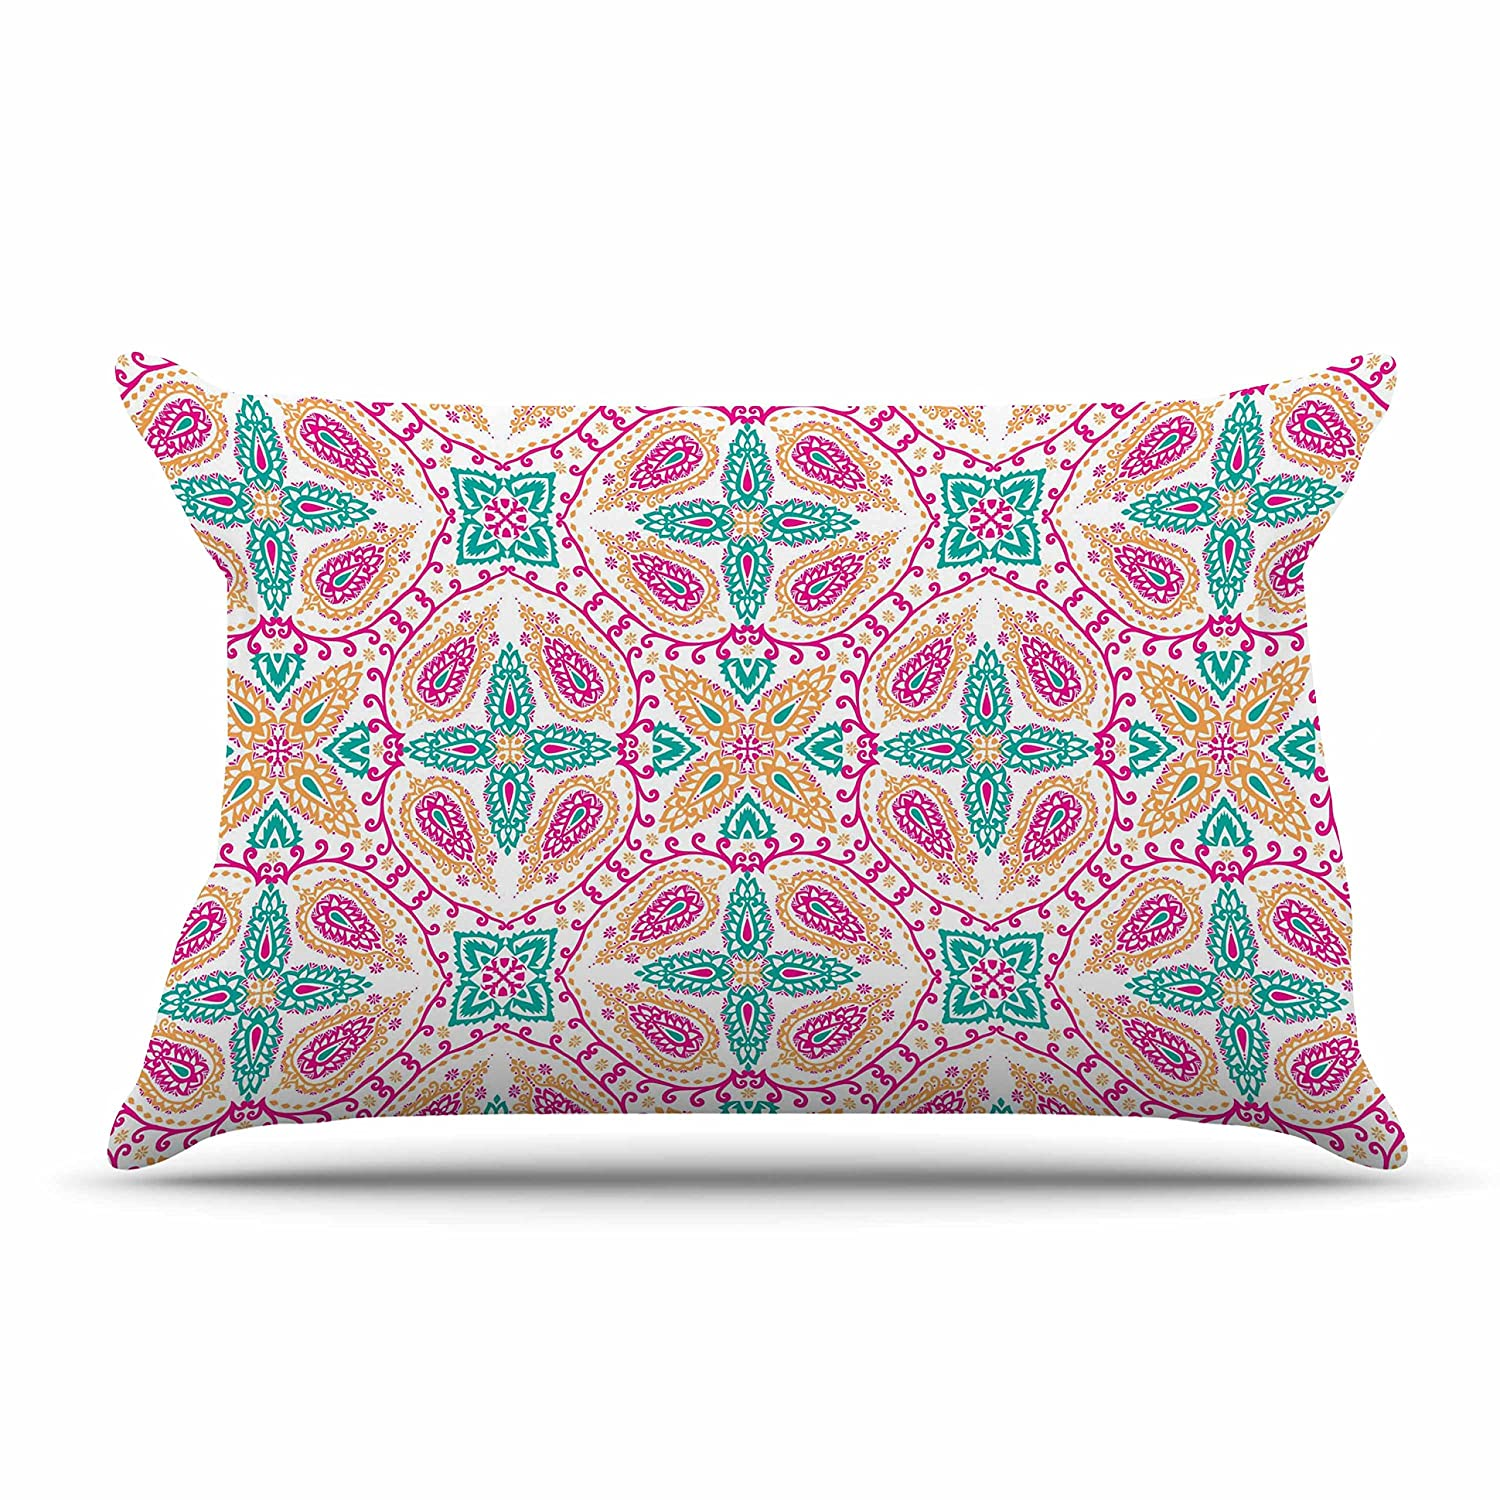 Kess InHouse Nandita Singh Boho in Multicolor Pink Abstract King Pillow Case, 36 by 20-Inch, 36' X 20'